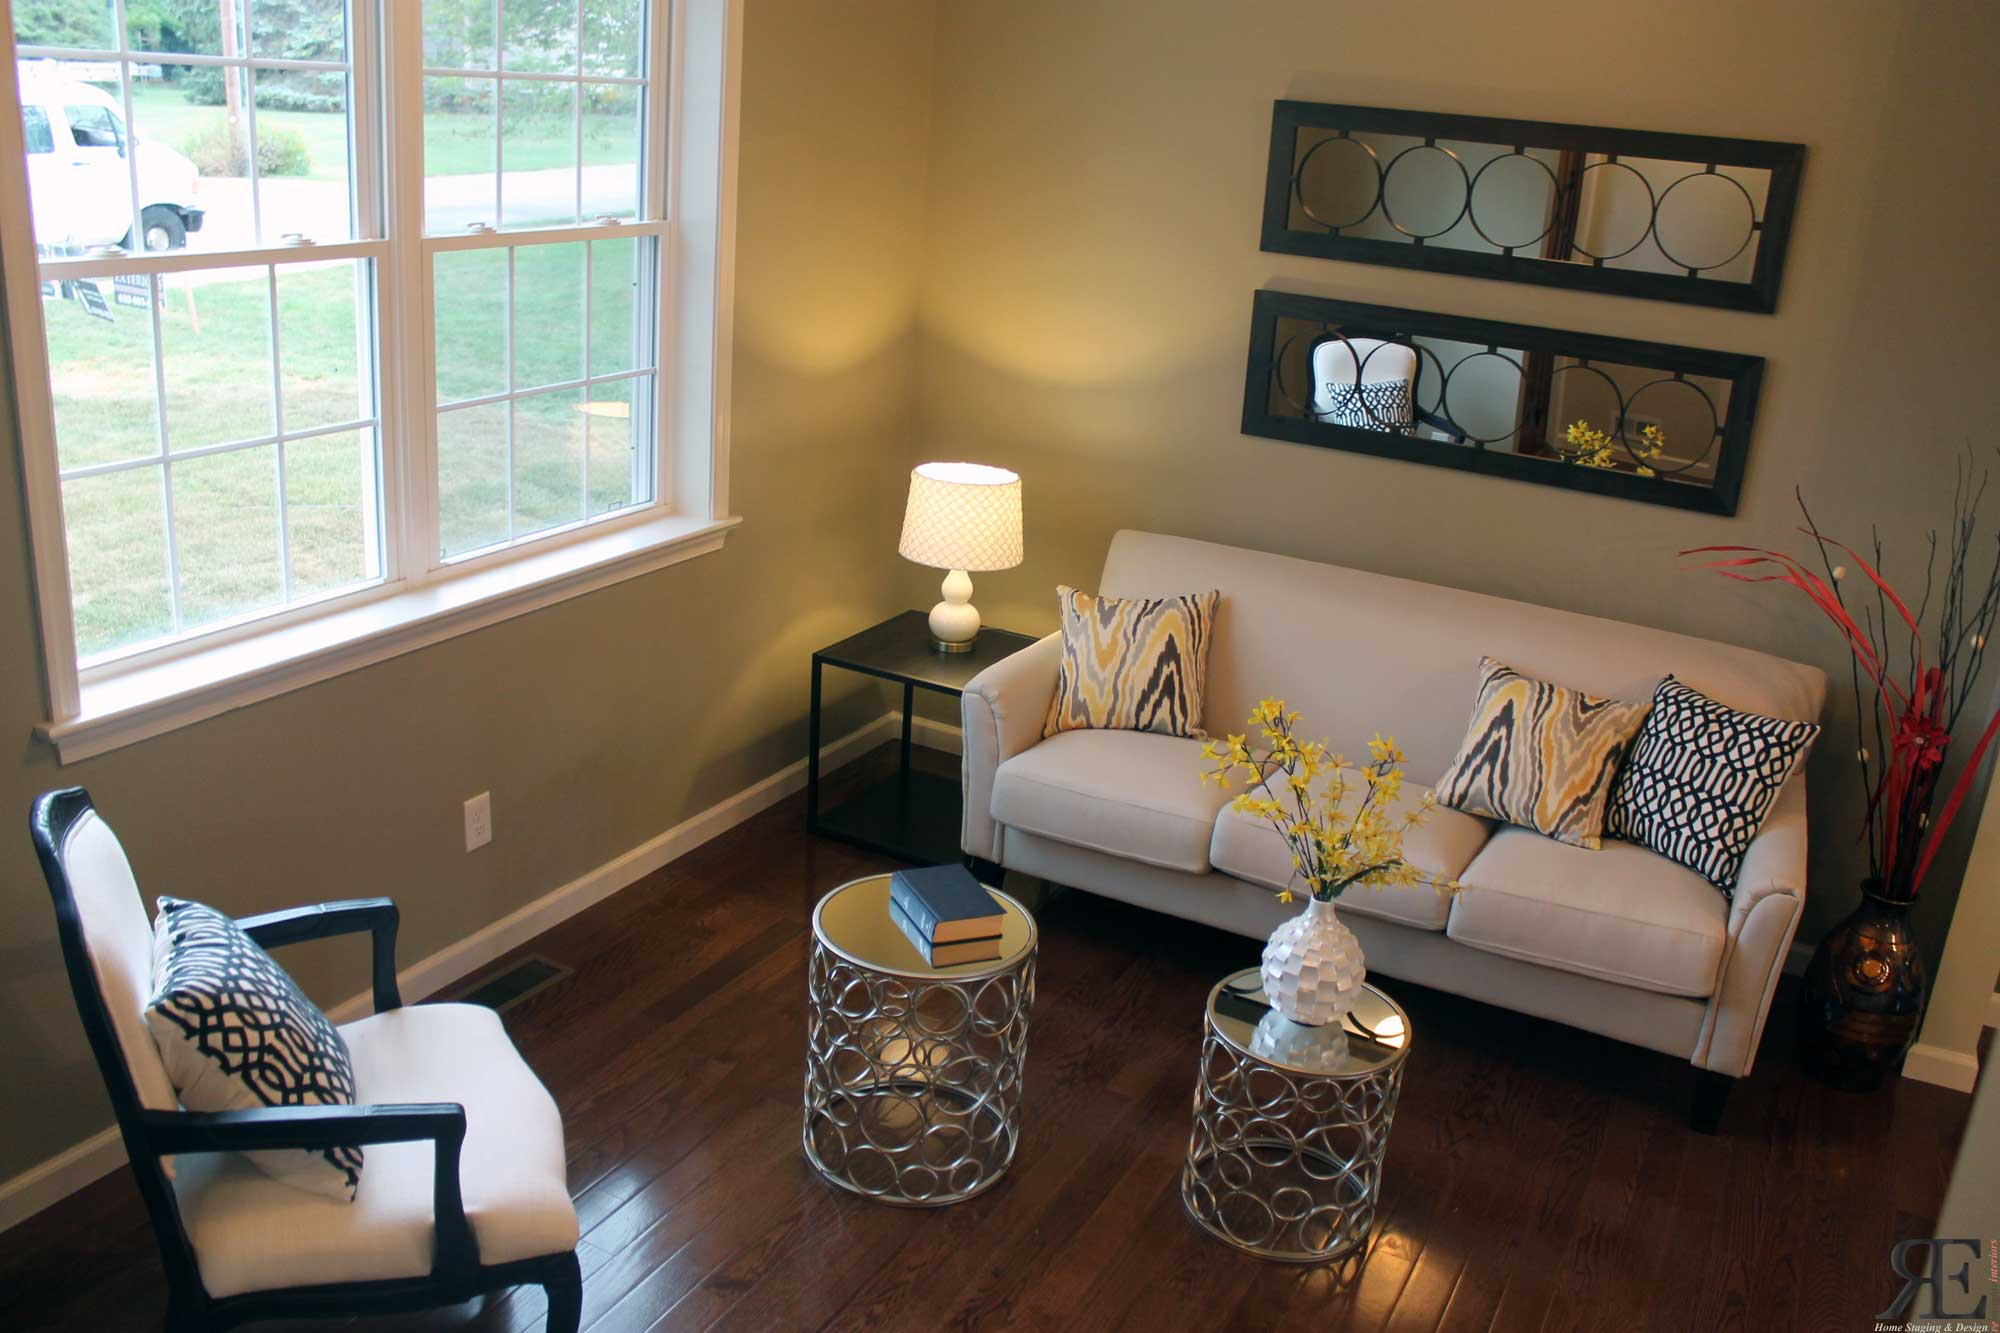 Vacant Staging In Malvern Chester County PA Home Stager Designer Magda Dub